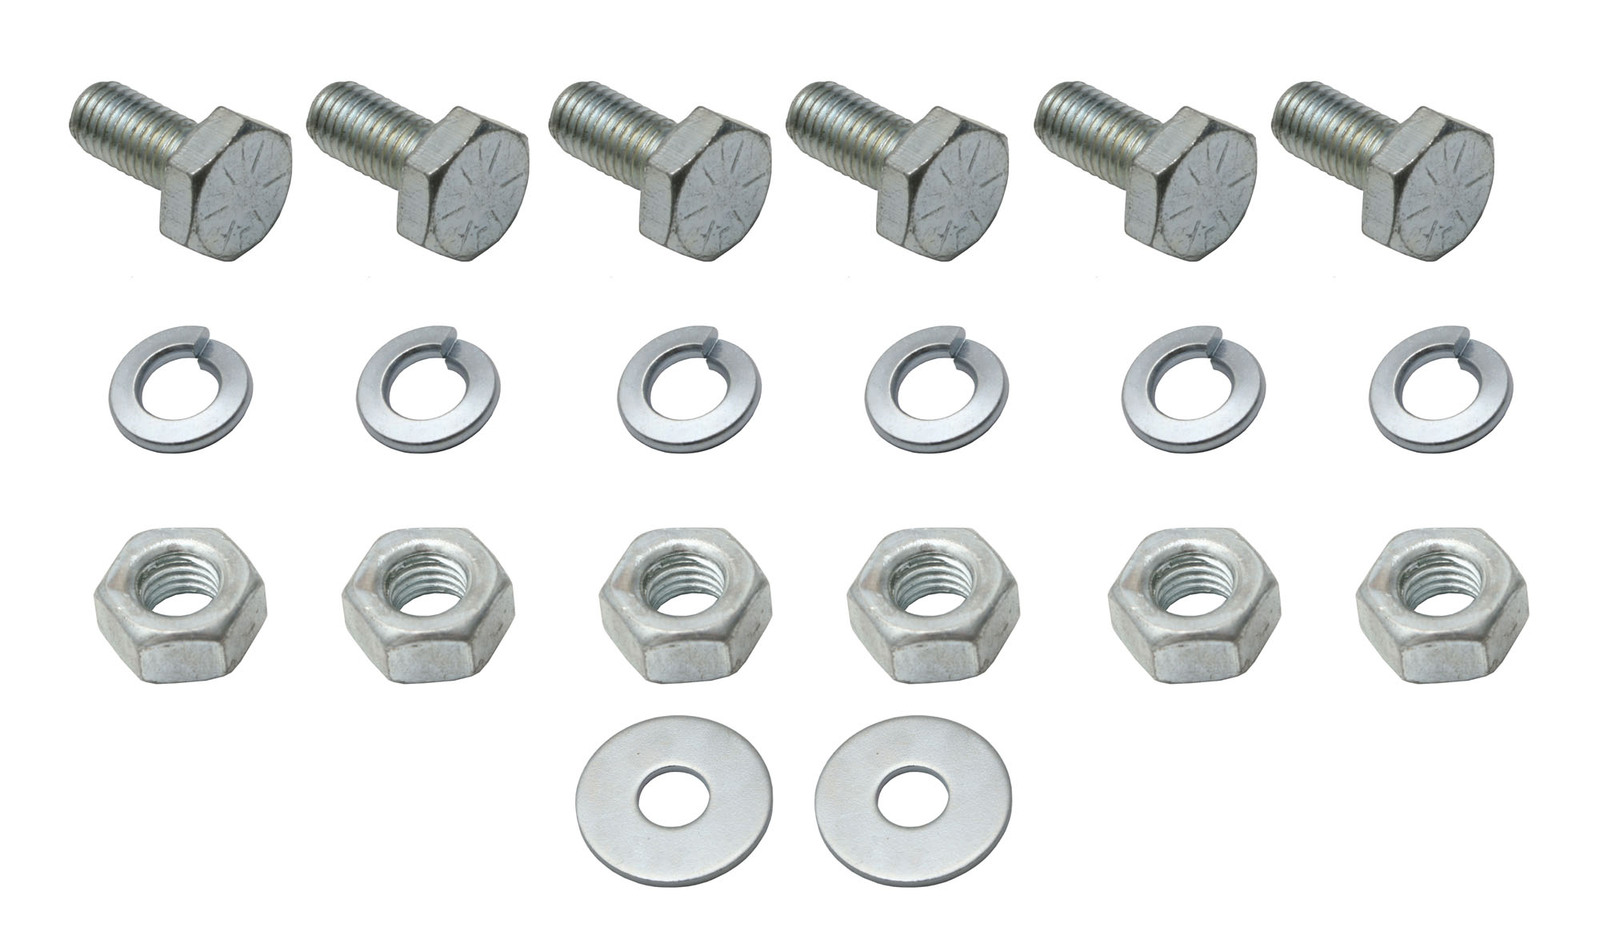 Fitting Bolt Nut Kit HQ HJ HX HZ WB screw Holden Battery Tray Mounting